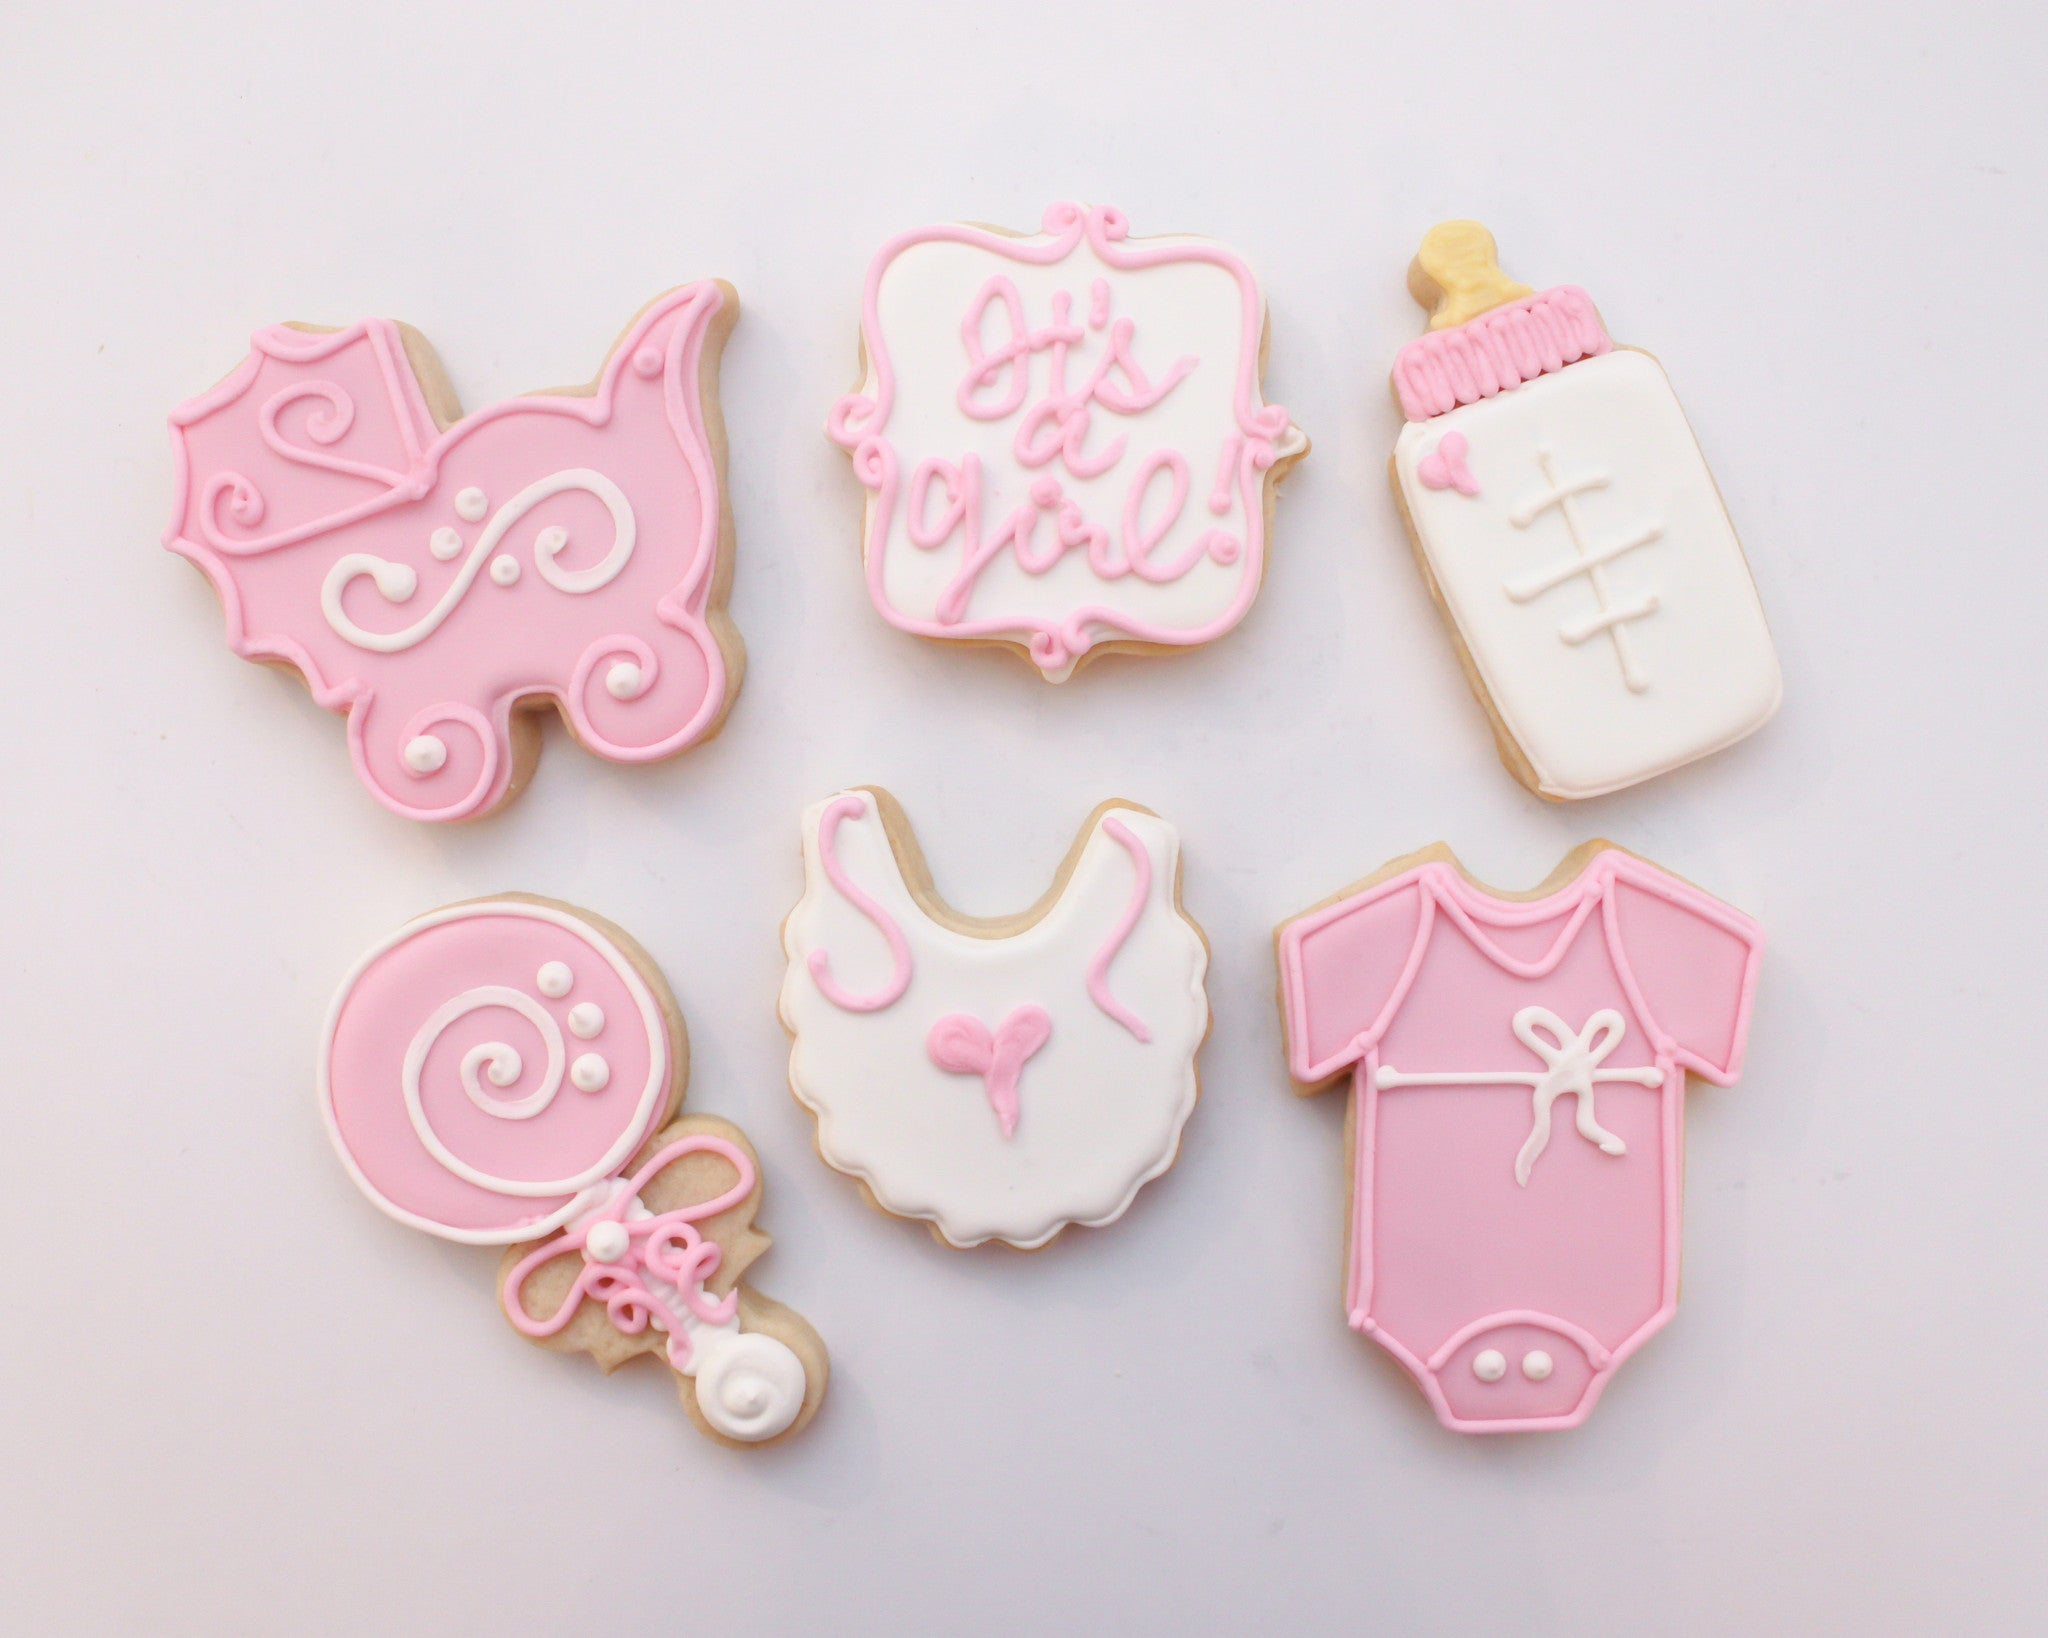 e90140c3f It's a Girl Baby Set - Whimsy Cookie Company